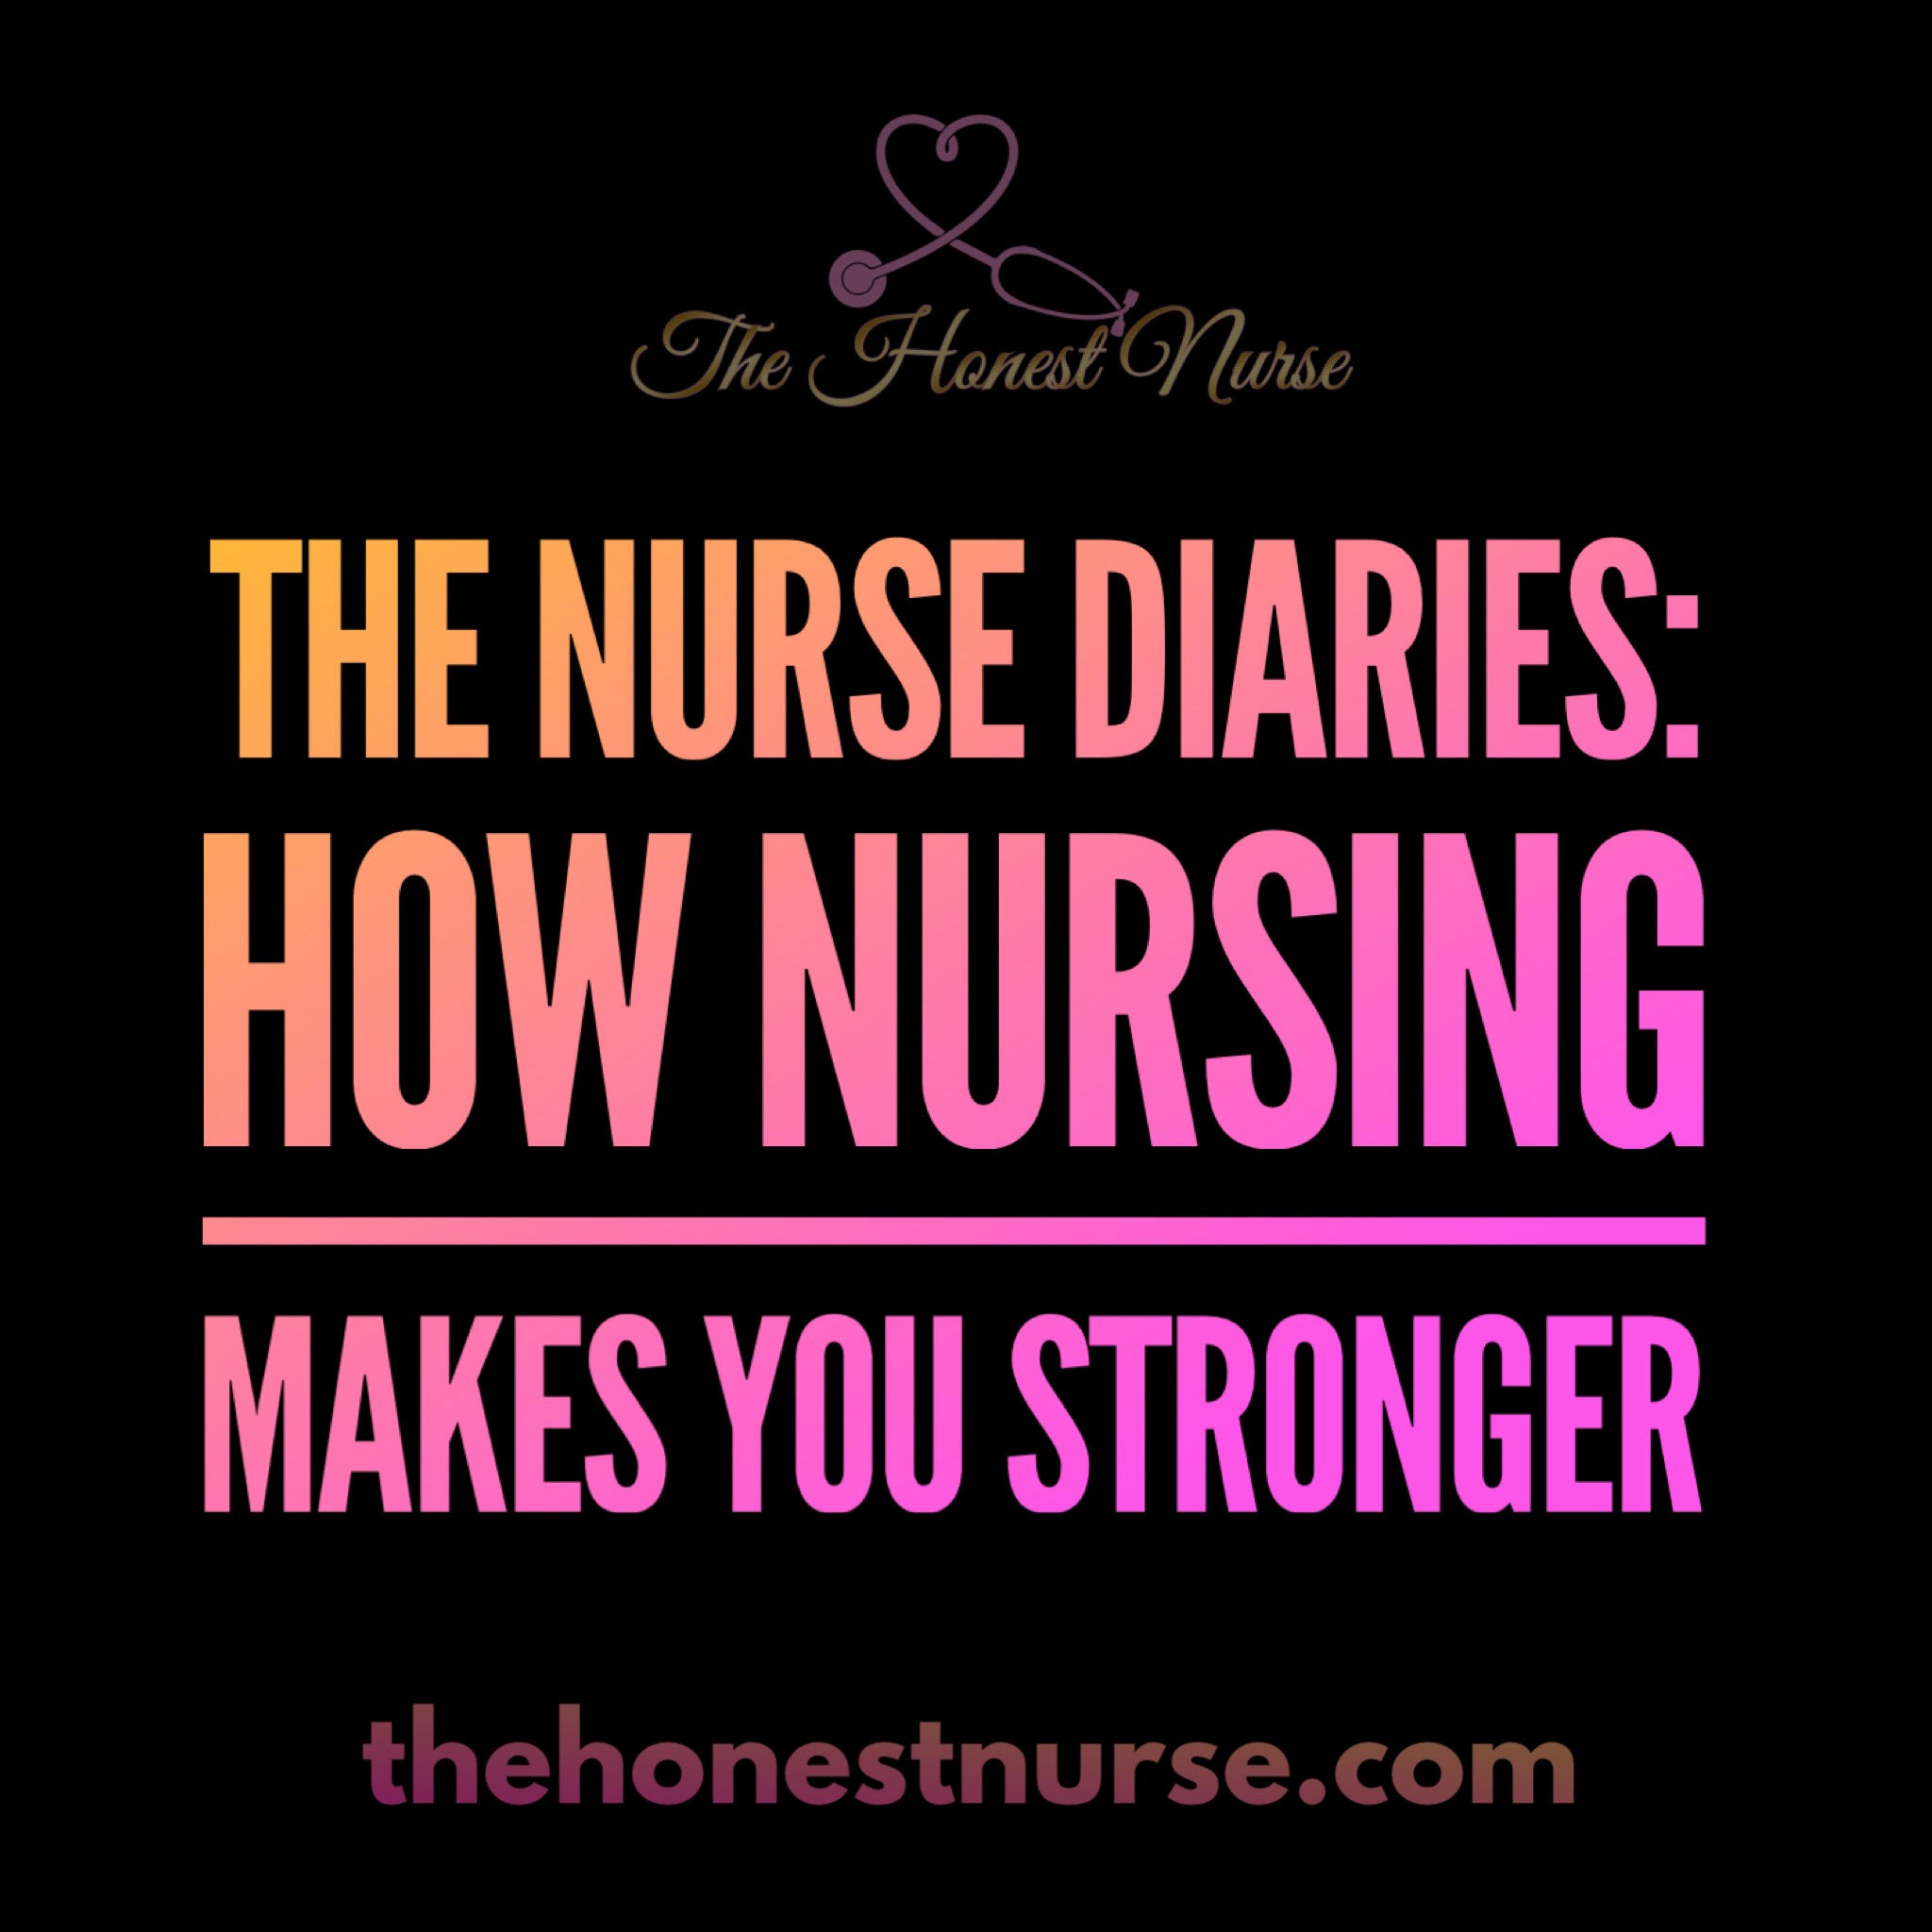 How Nursing Made me stronger - Ever wonder if you're cut out for nursing? If you are strong enough? Well, I can say with pretty much certainty that it was nursing which made me the strong person I am today. My story does not compare however to that of Nurse Heather. She successfully completed nursing school, went through different job roles in a short time, and mentored and supported other nurses all while taking care of her Dad. Her interview tells the story that no matter what you are going through, you are going to make it and your experience will help others.